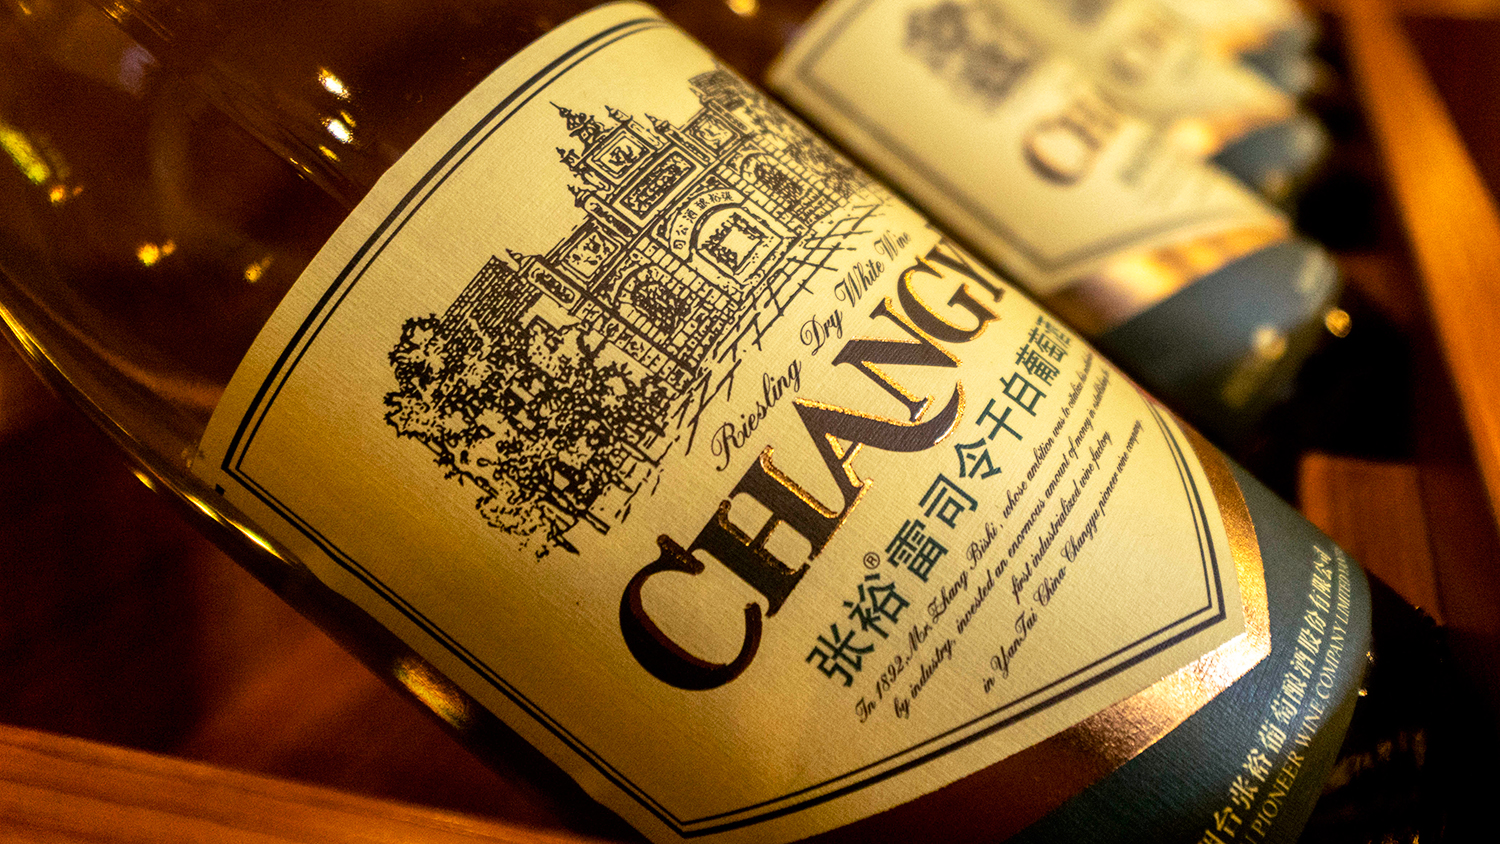 changyu chinese wine